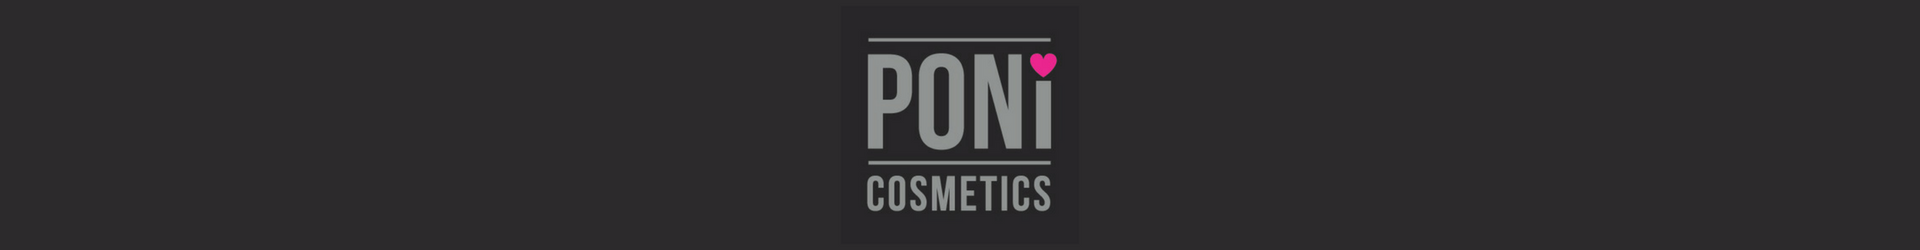 PONi Cosmetics NZ